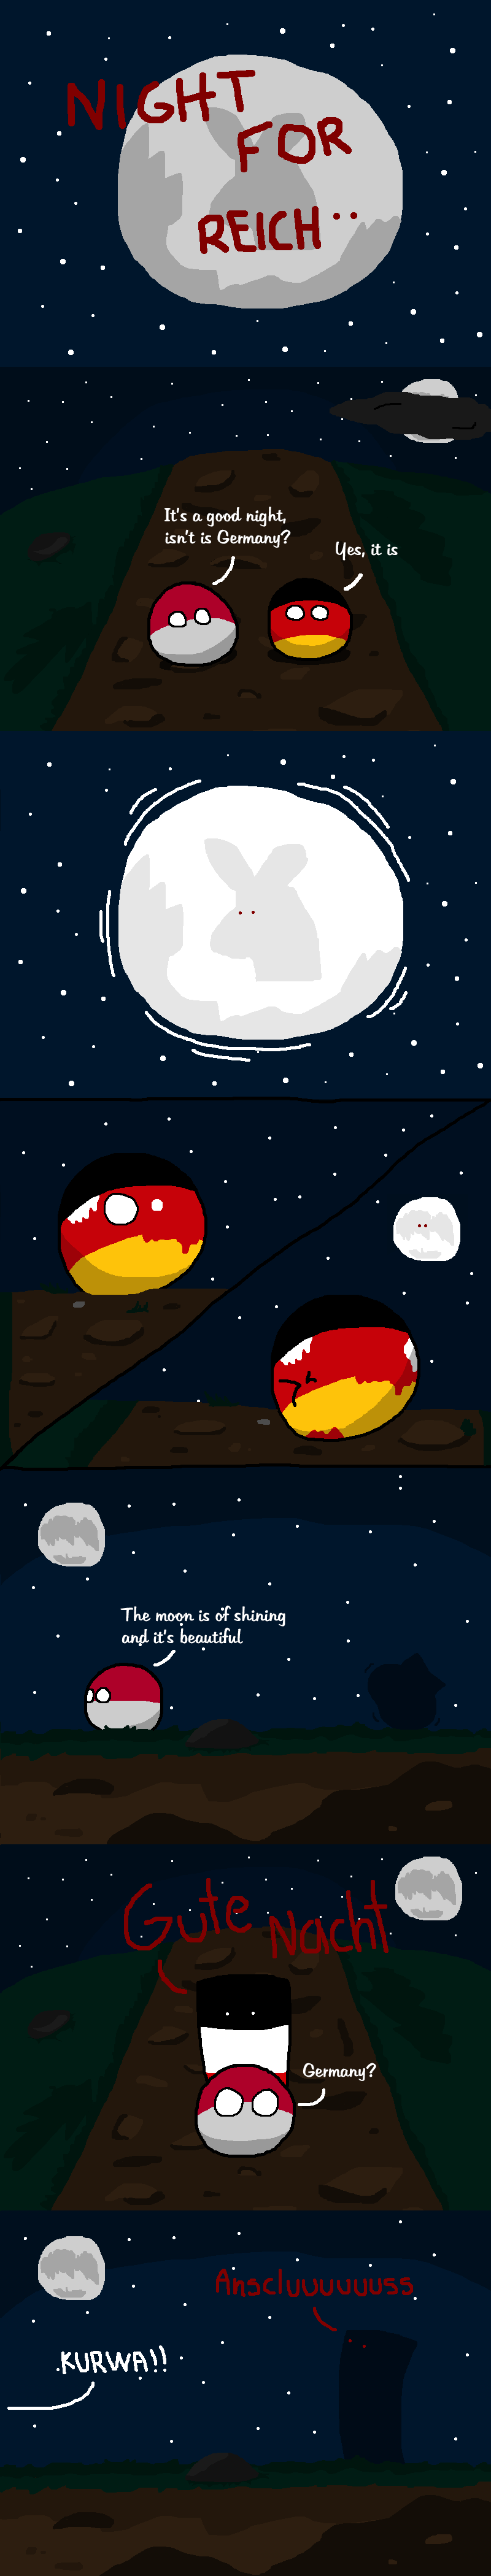 Night for Reich